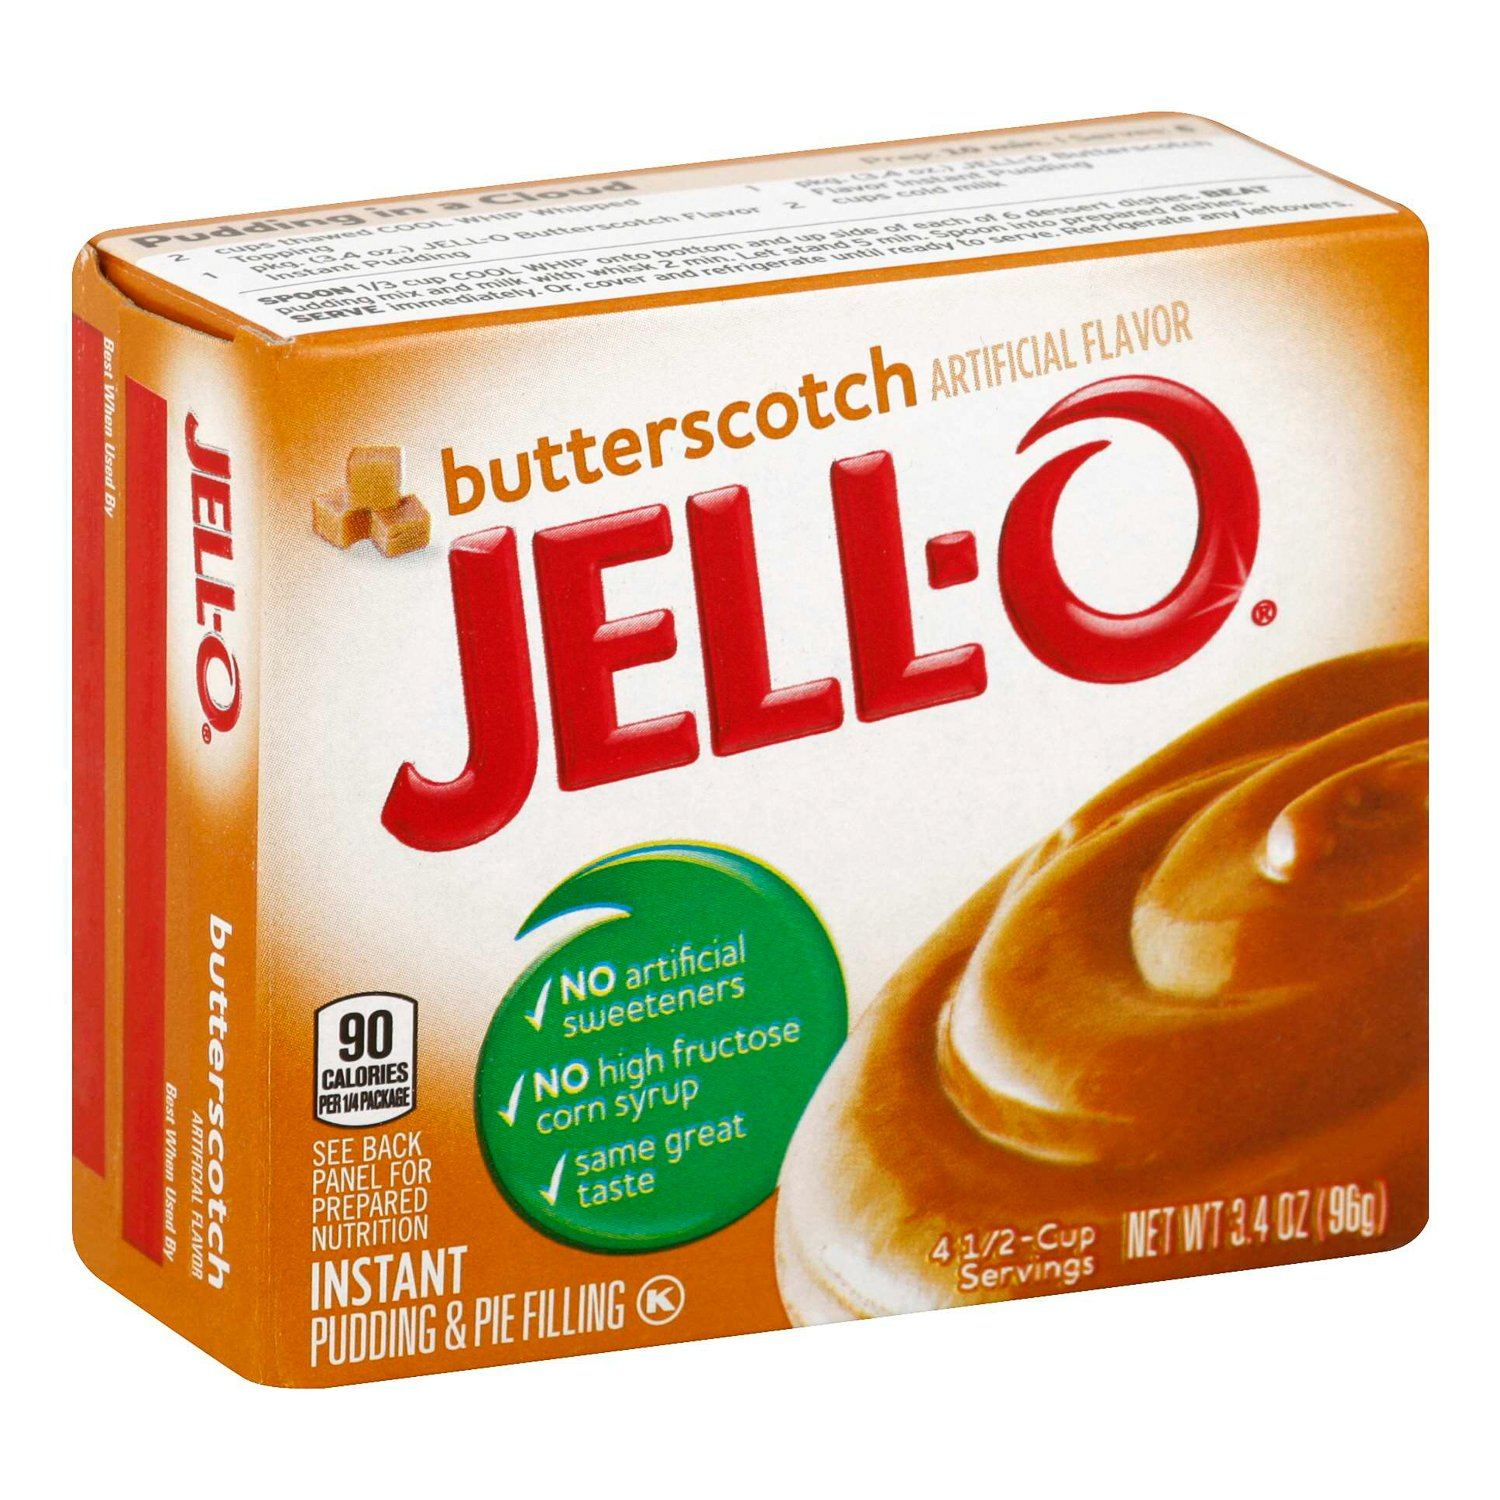 Jell-O Instant Pudding & Pie Filling Mixes Jell-O Butterscotch 3.4 Ounce